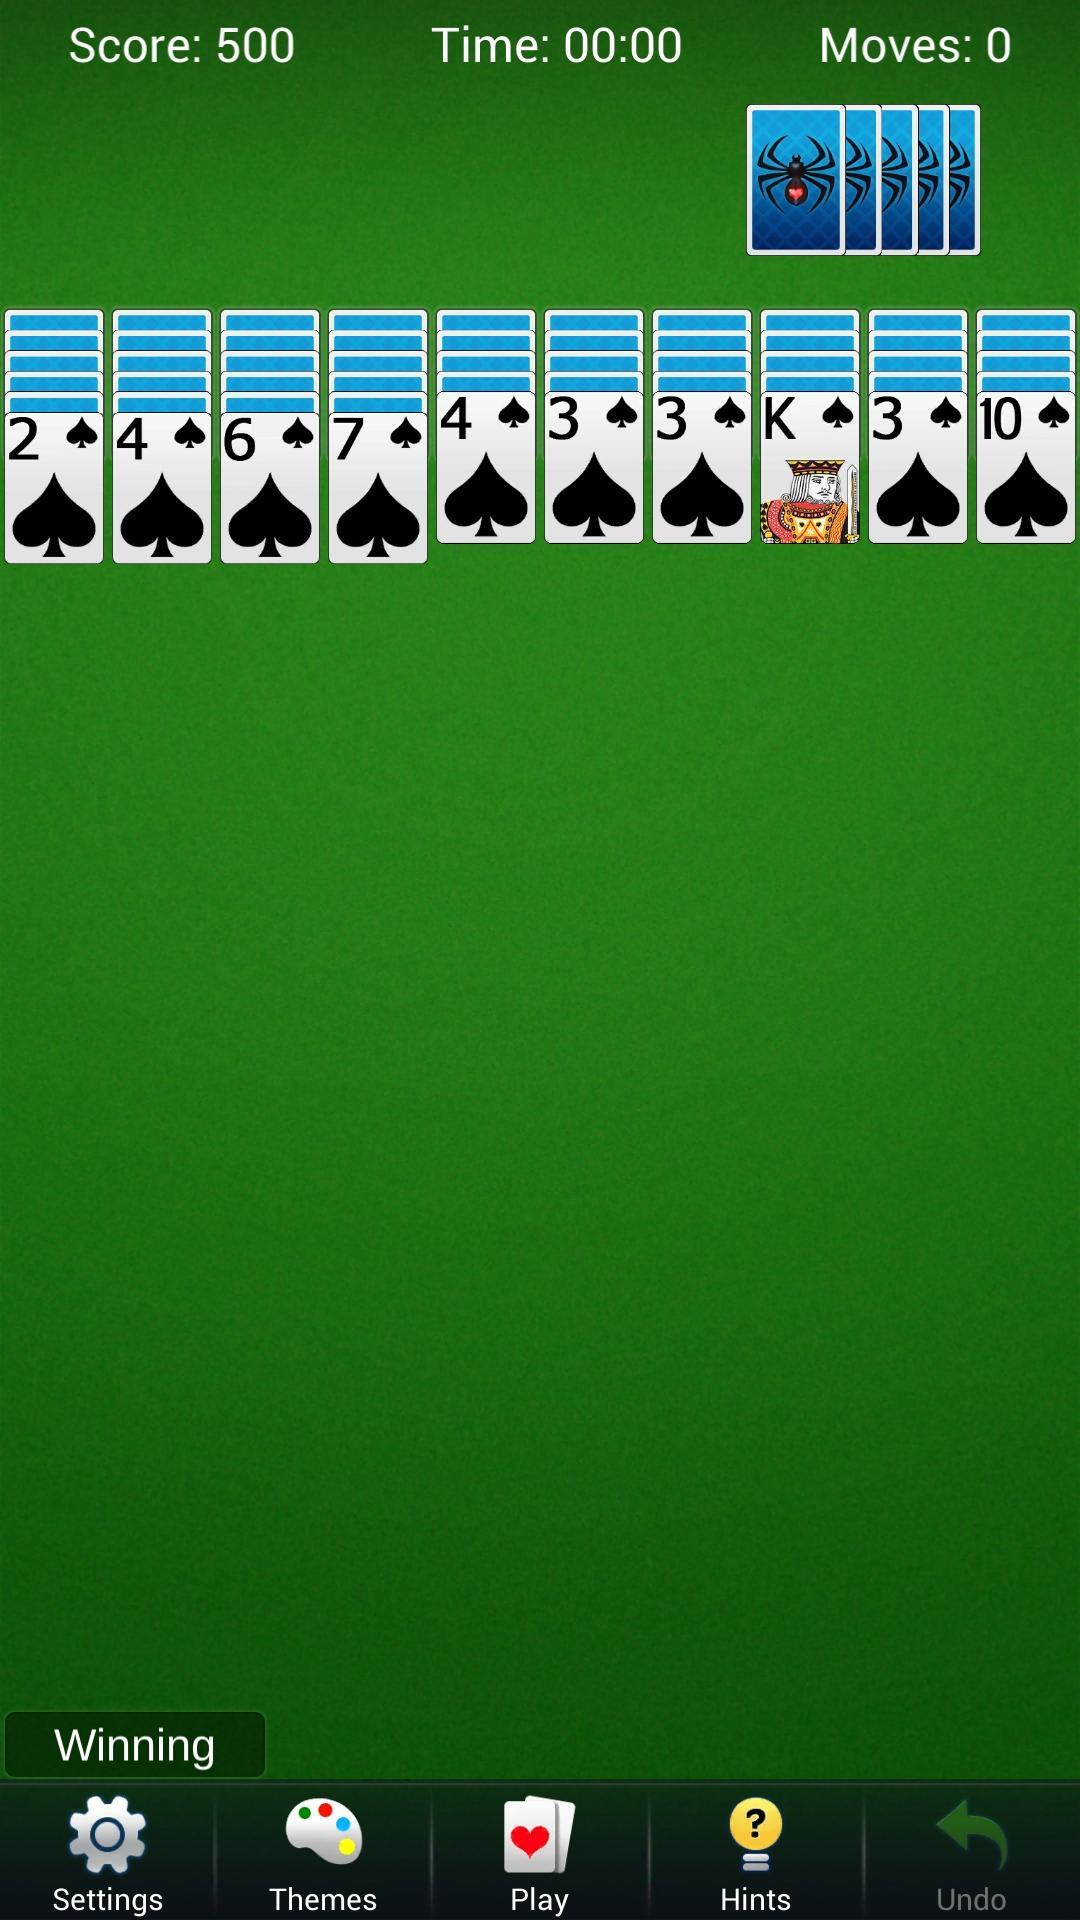 Spider Solitaire - Best Classic Card Games 1.6 Screenshot 14